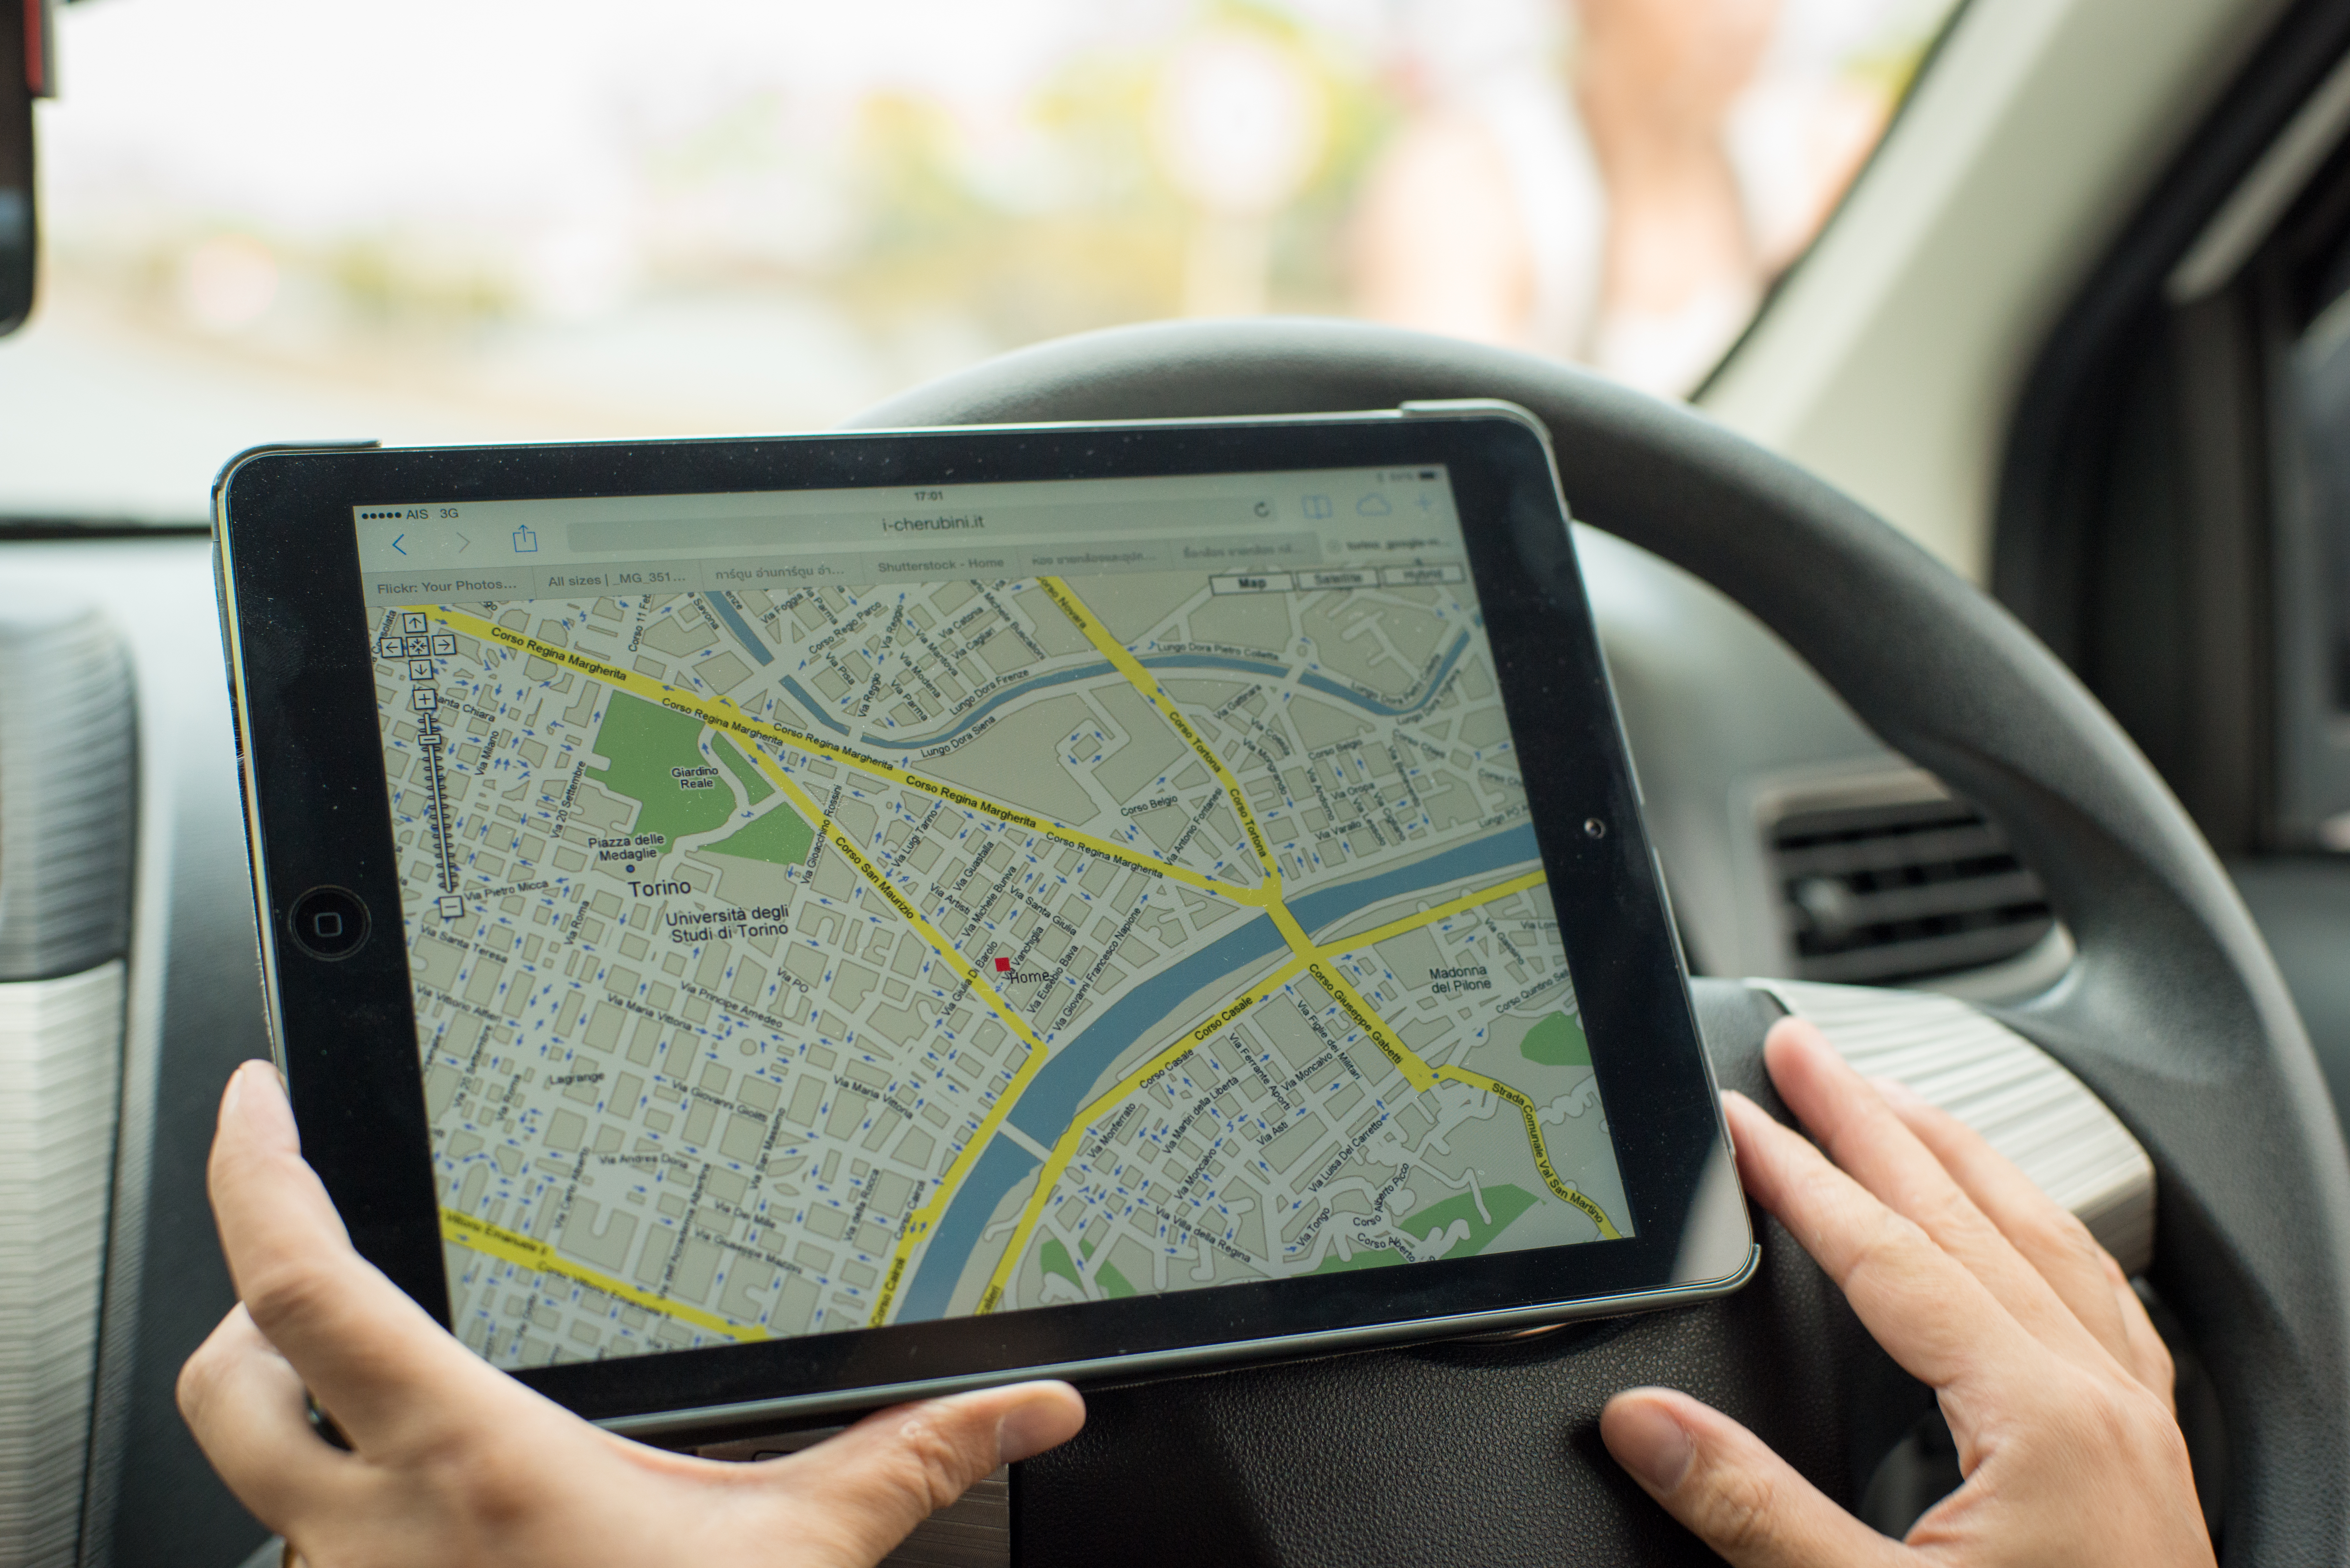 google map on ipad and smart phone in car